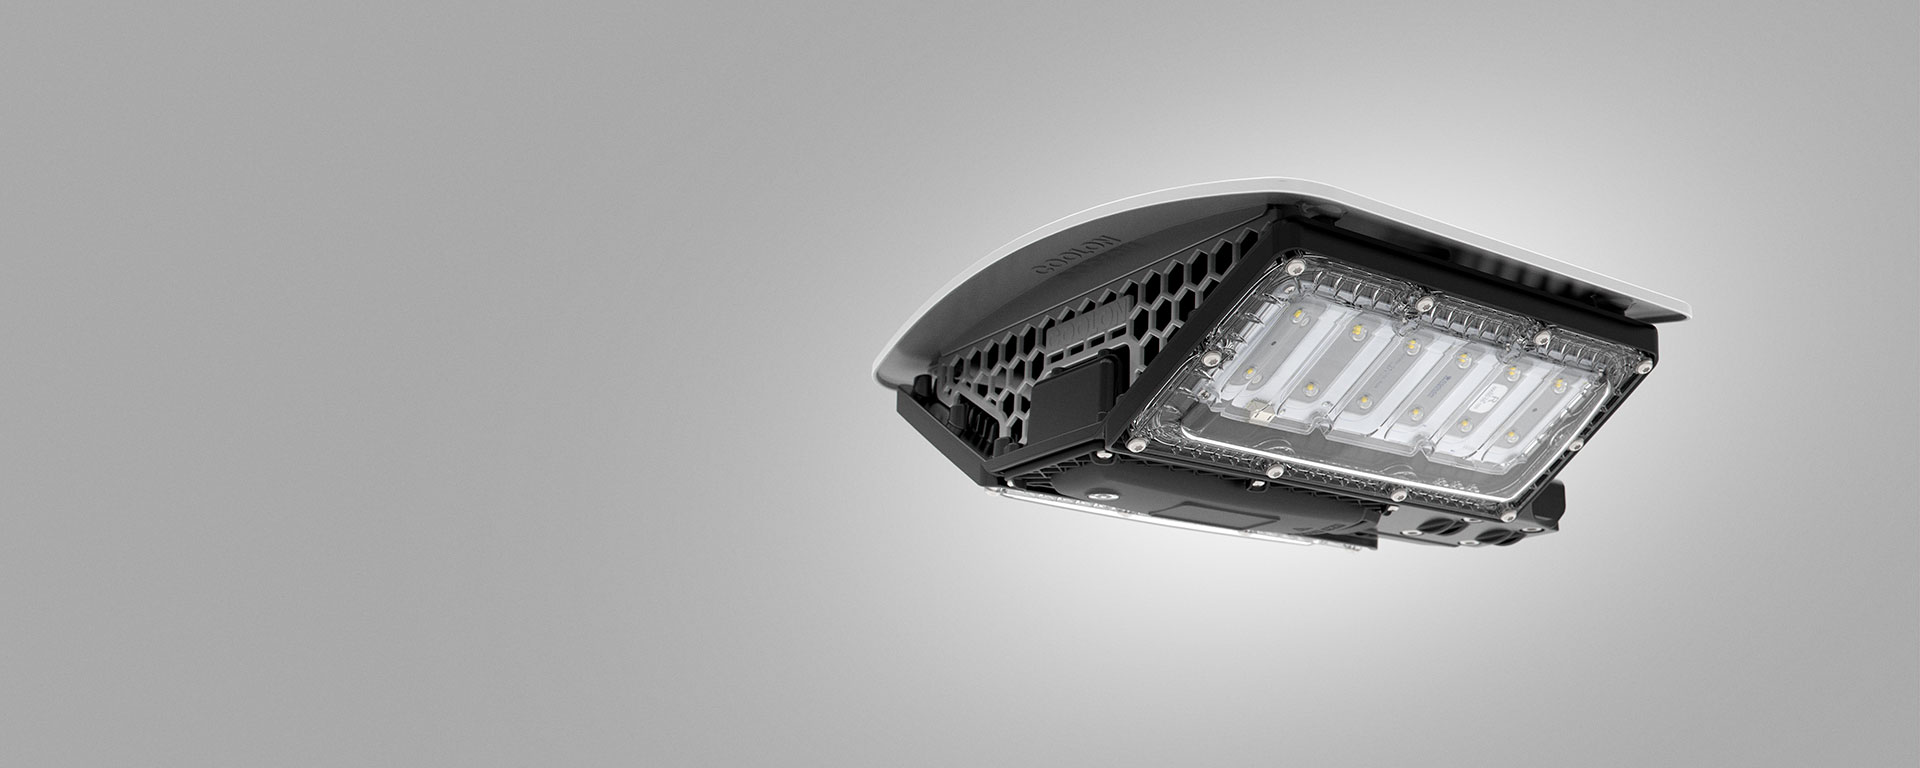 DLK LED conveyor / area light for mining and industrial applications, close up view on the body design